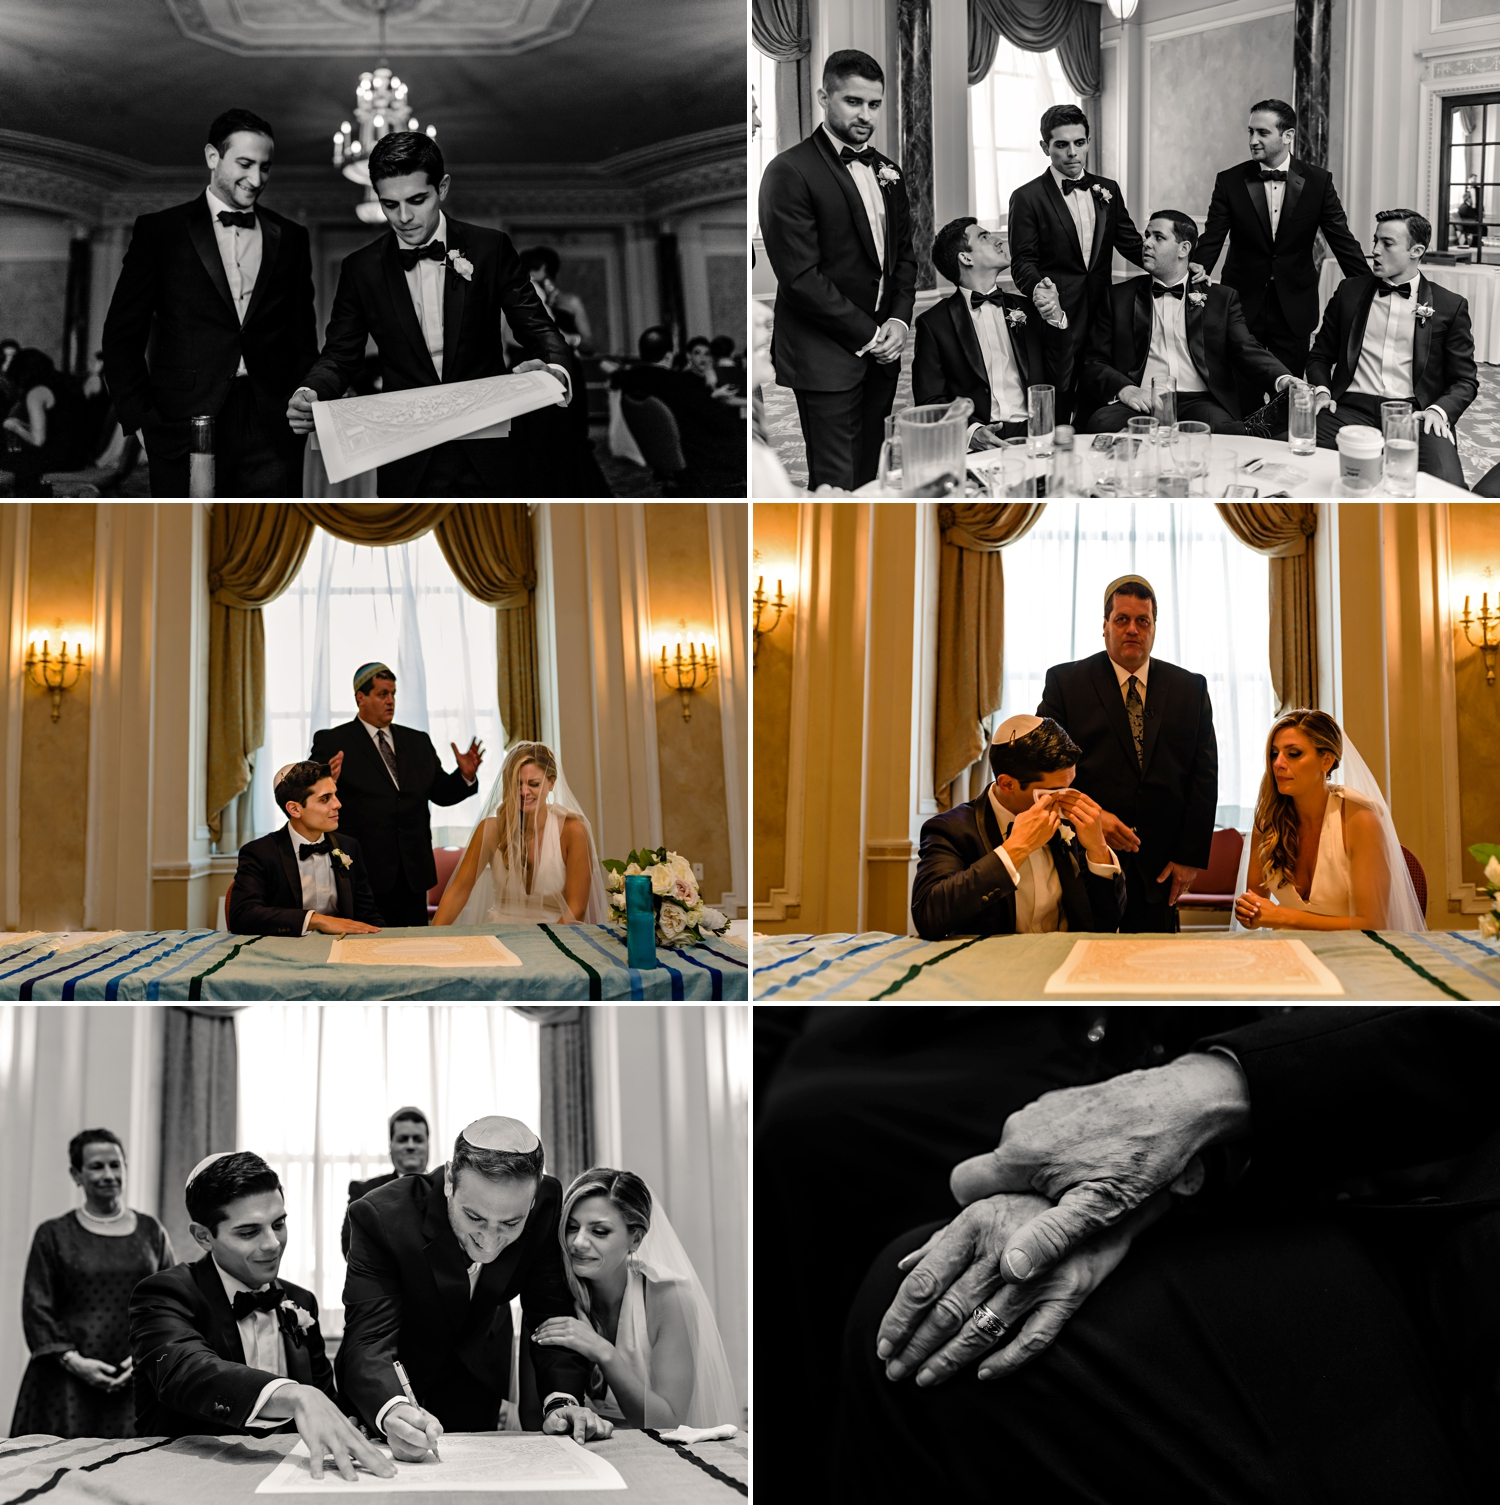 photos of candid moments during the ketubah signing during a jewish wedding at the chateau laurier wedding in ottawa ontario